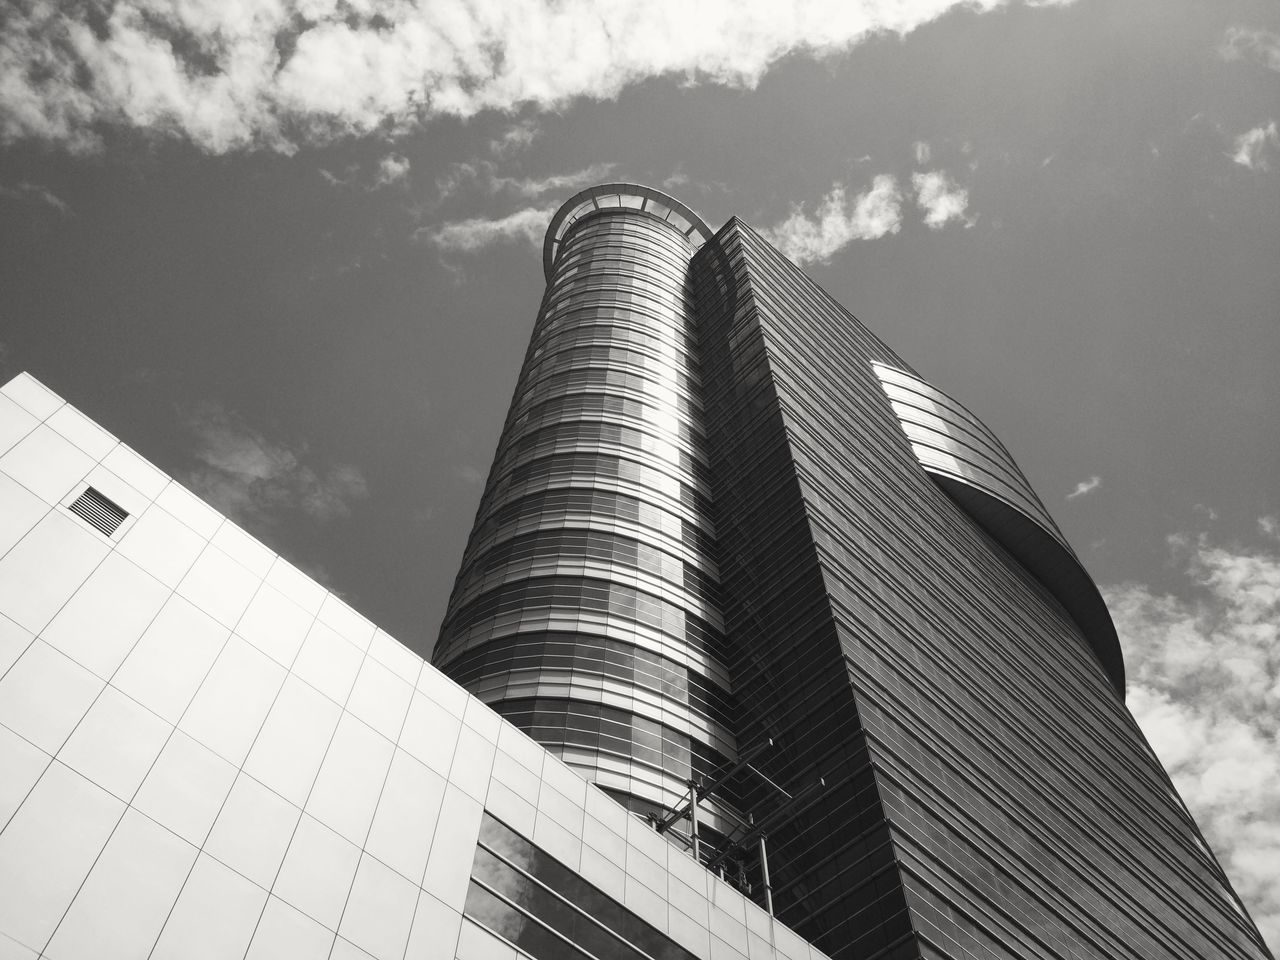 Building. Skyscraper Architecture Low Angle View Tower Office Building Exterior Business Finance And Industry Day Sky Building Exterior City The Architect - 2017 EyeEm Awards EyeEmNewHere